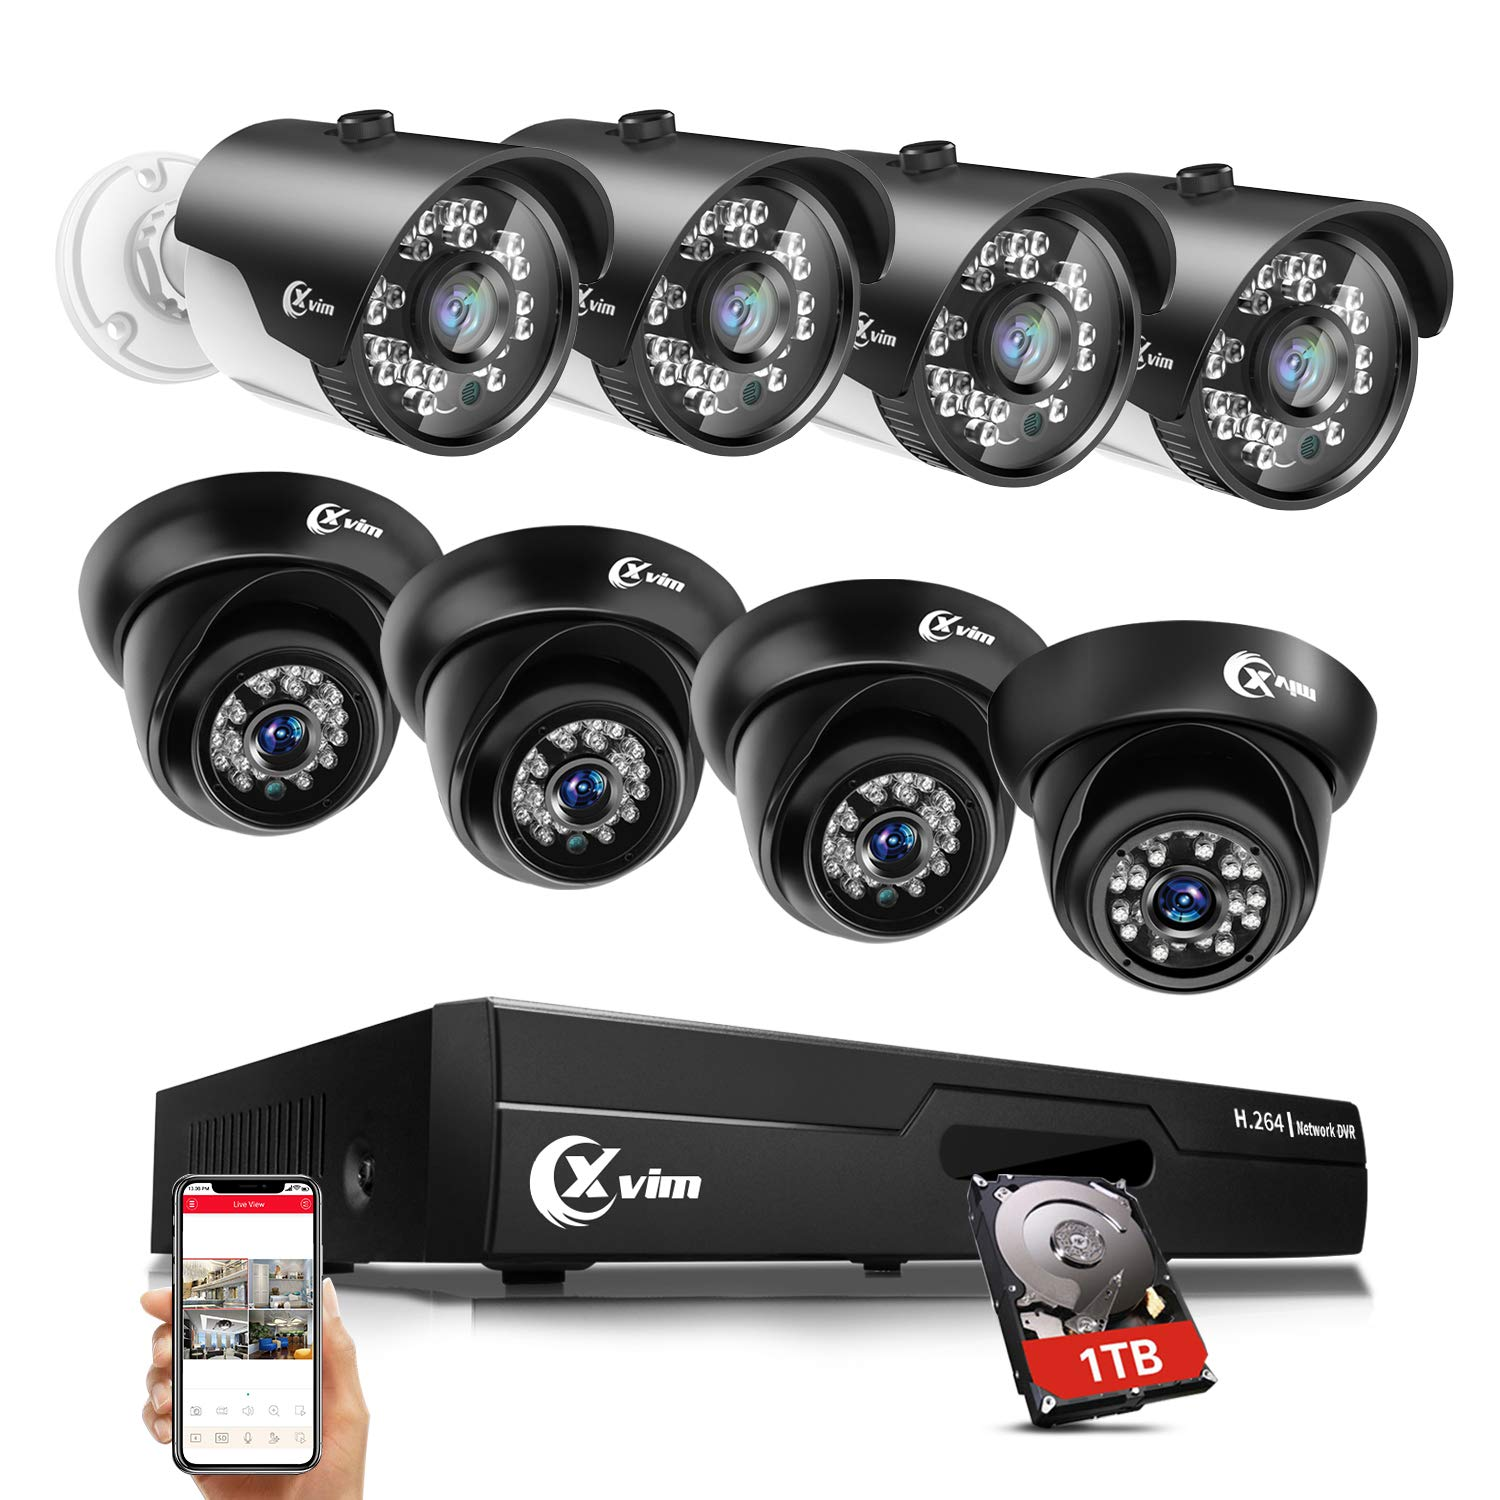 XVIM Home Security Camera System with 1TB Hard Drive, 8 Channel 1080N DVR Video Recorder 8PCS 720P HD Waterproof CCTV Camera, Outdoor Surveillance Cameras, 85FT Night Vision, Easy Remote Access by X-VIM